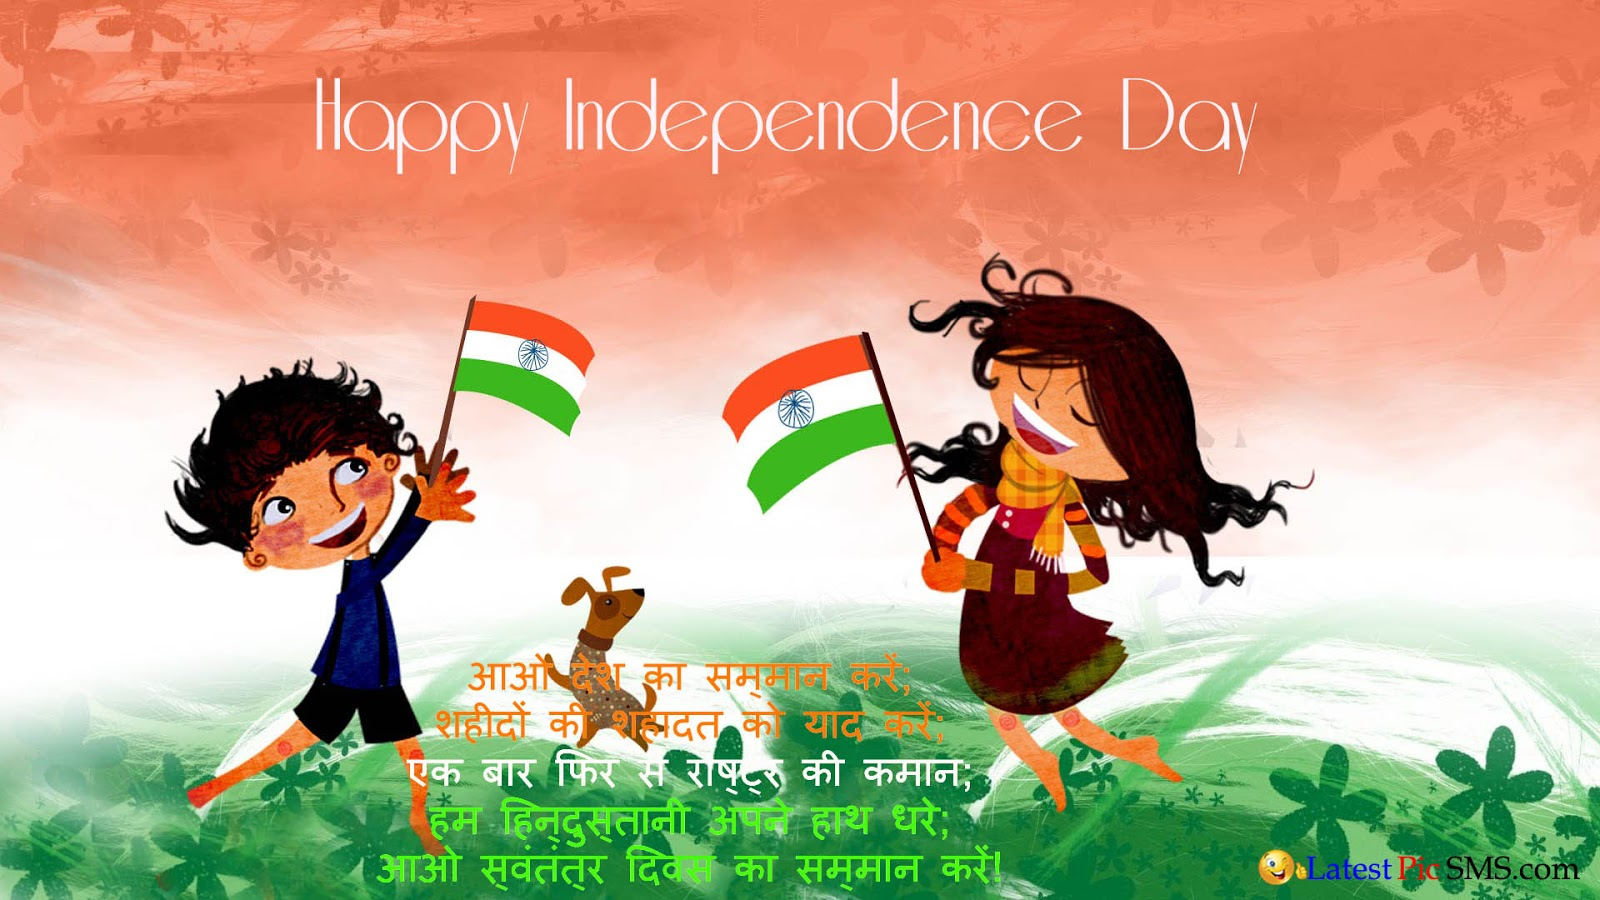 Independence Day Photos Free Download